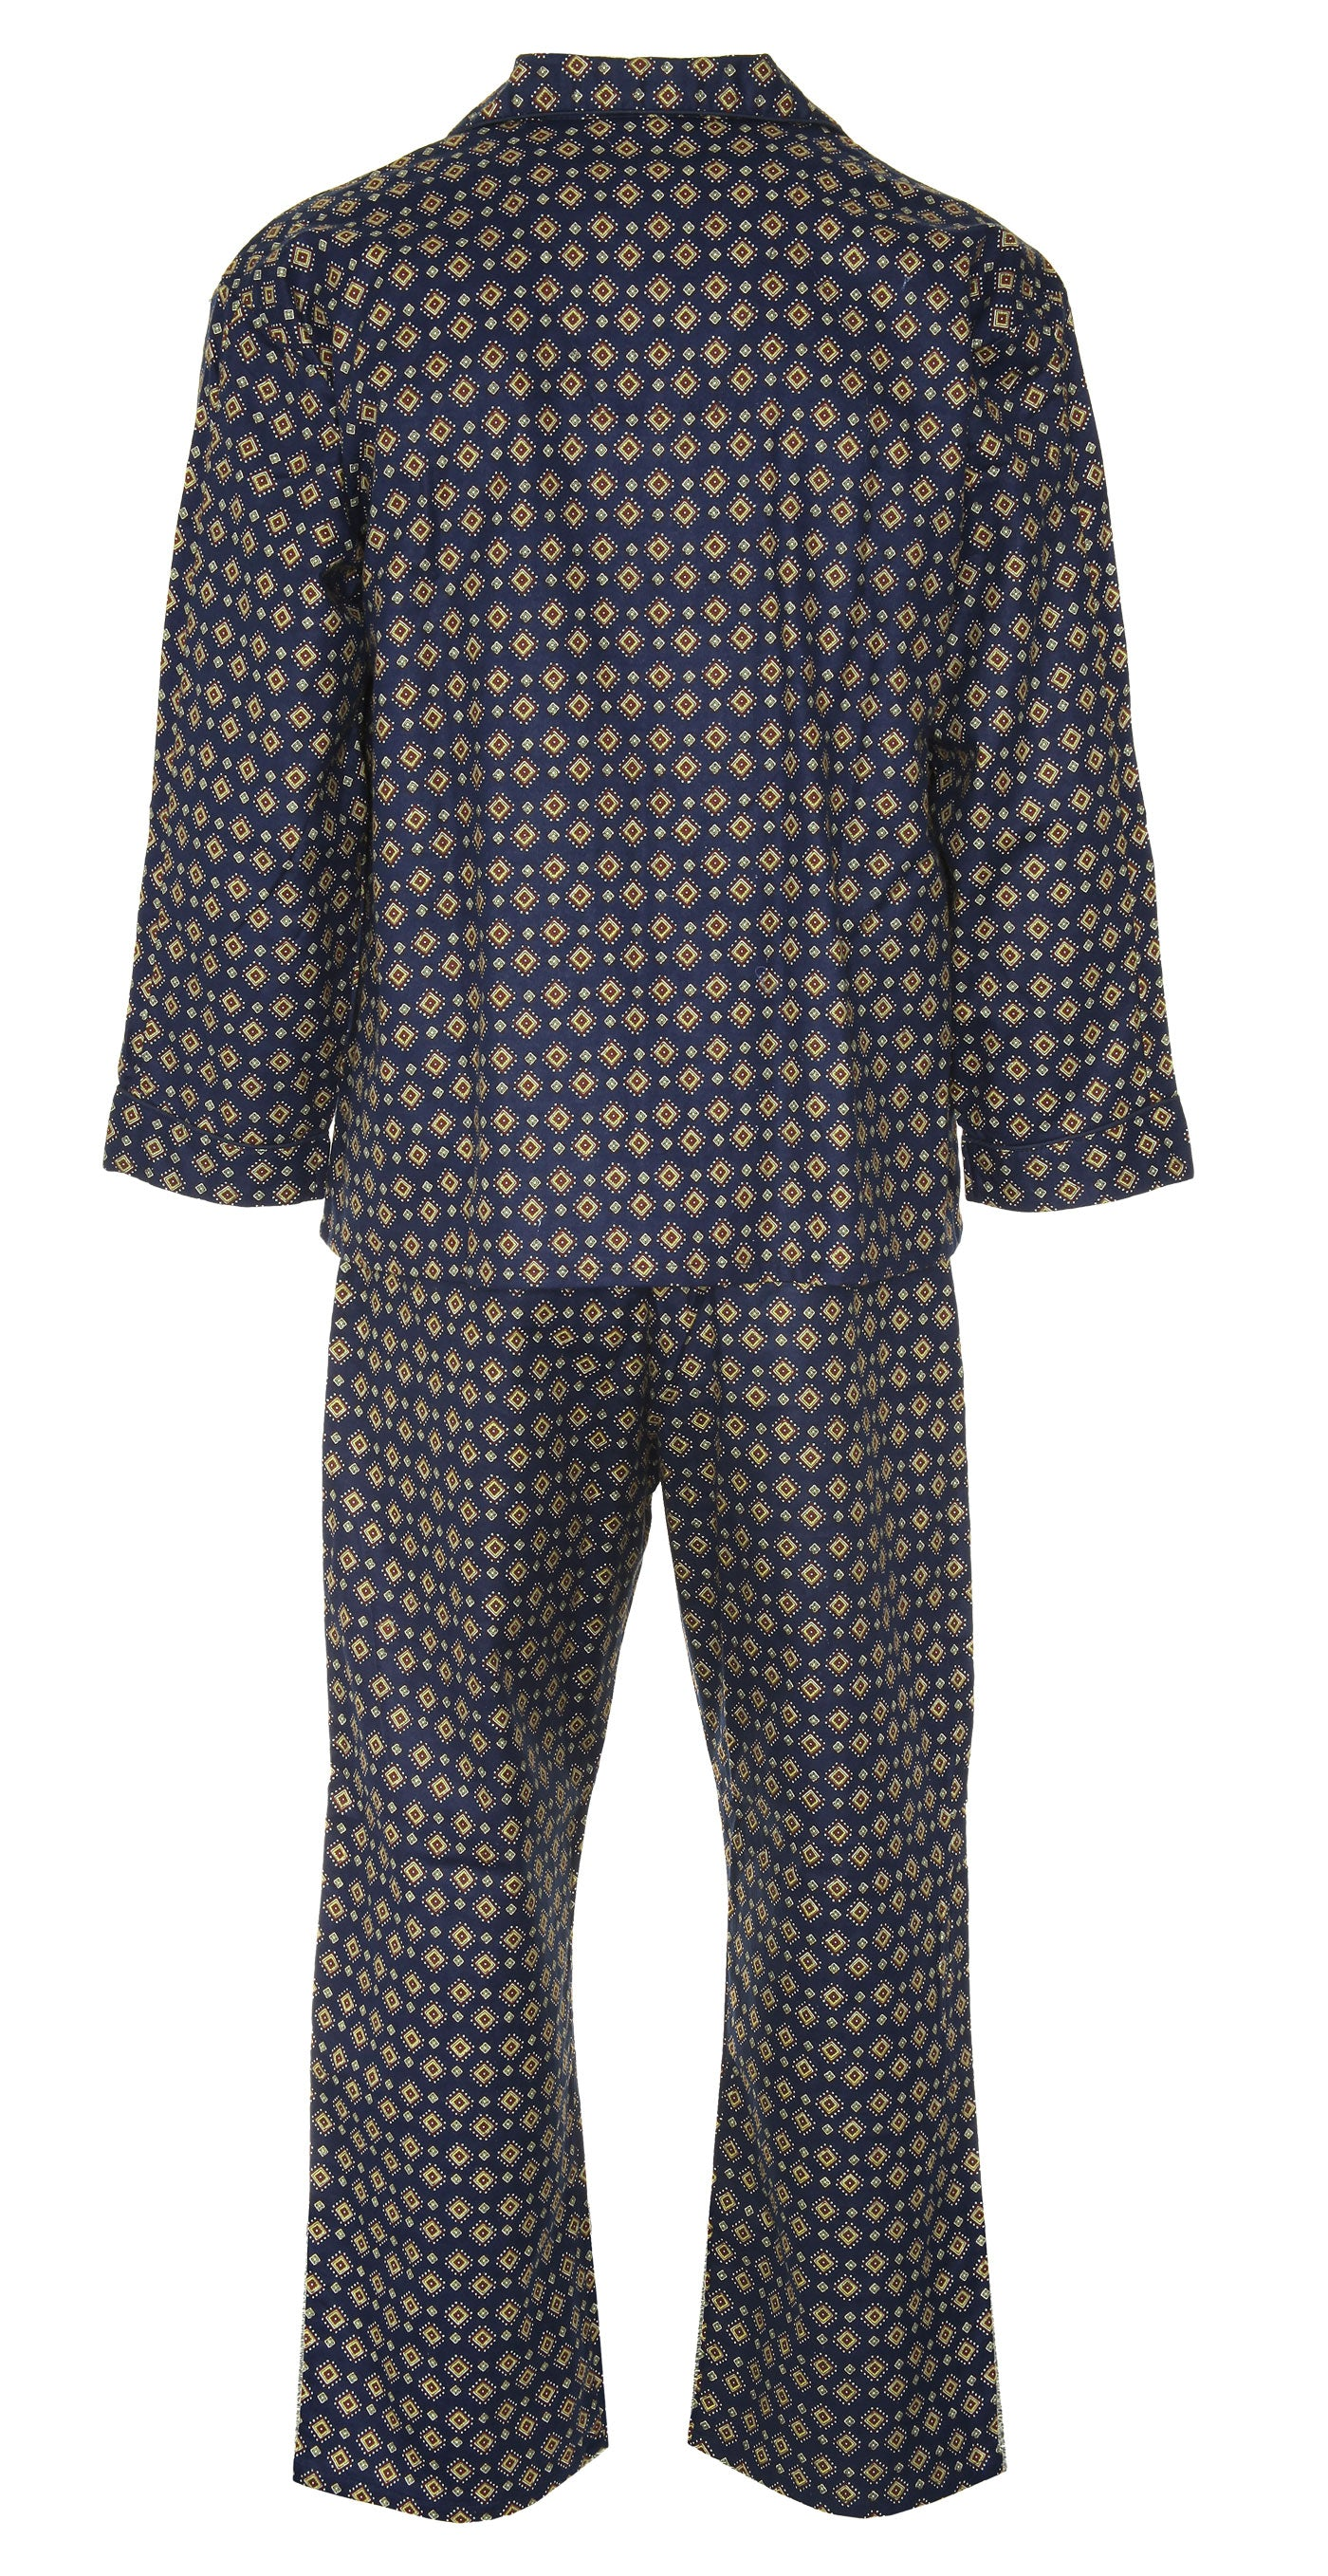 back view pair of pyjamas by champion blue sea pyjamas all pure cotton